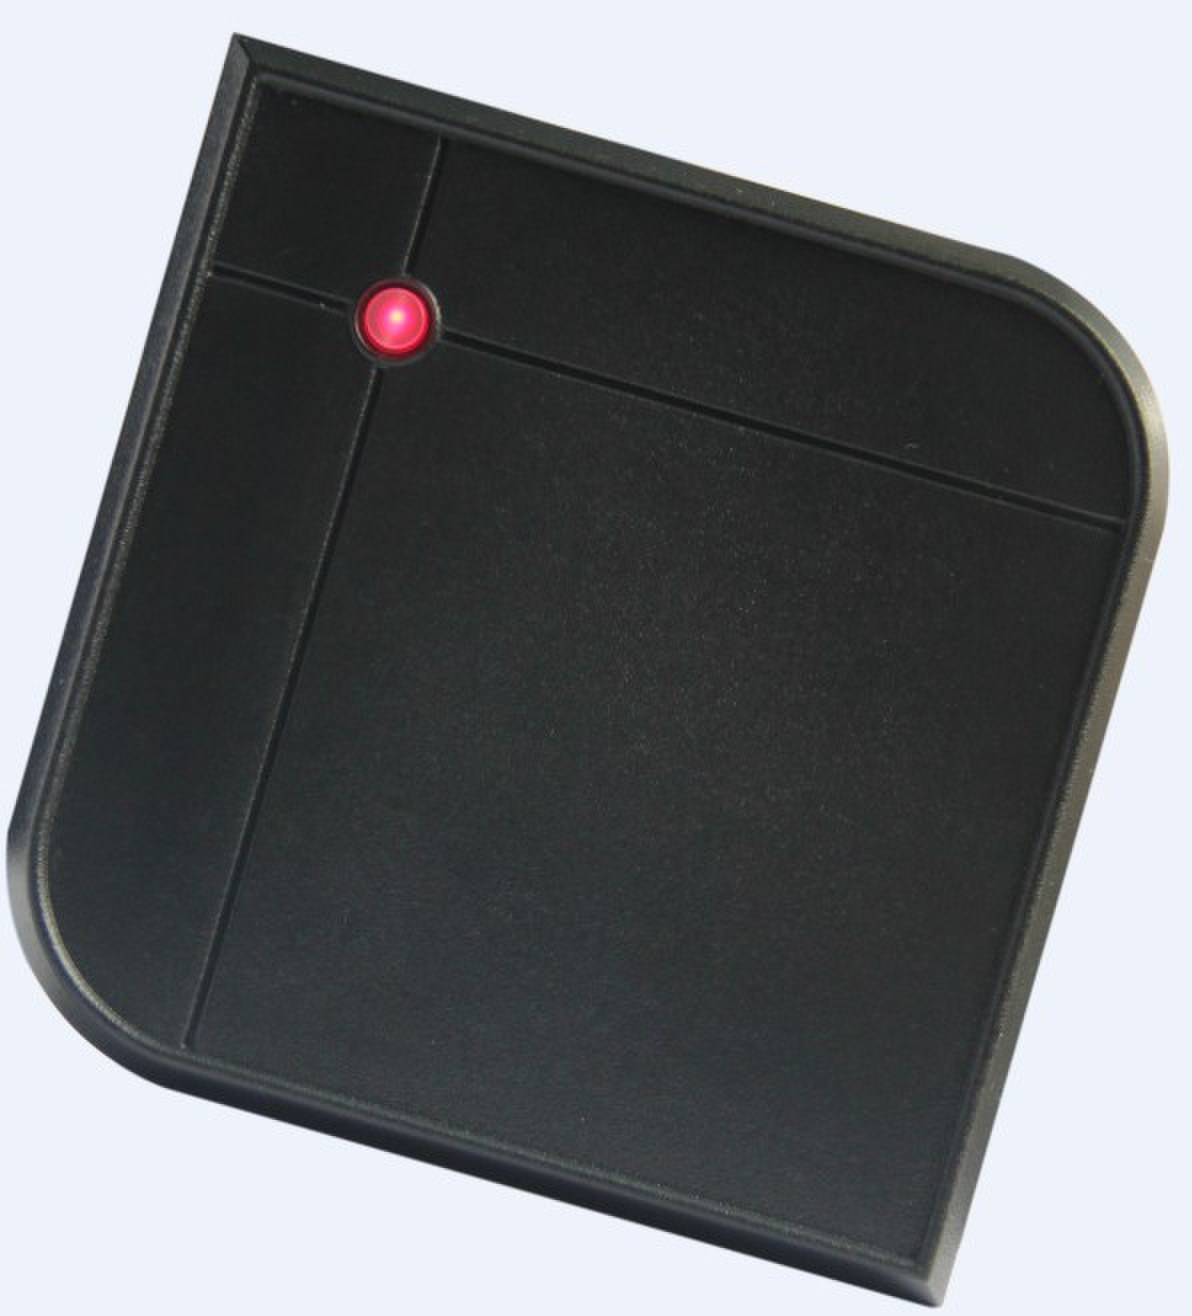 Passive Wiegand Card Reader in Access Control System Security Products